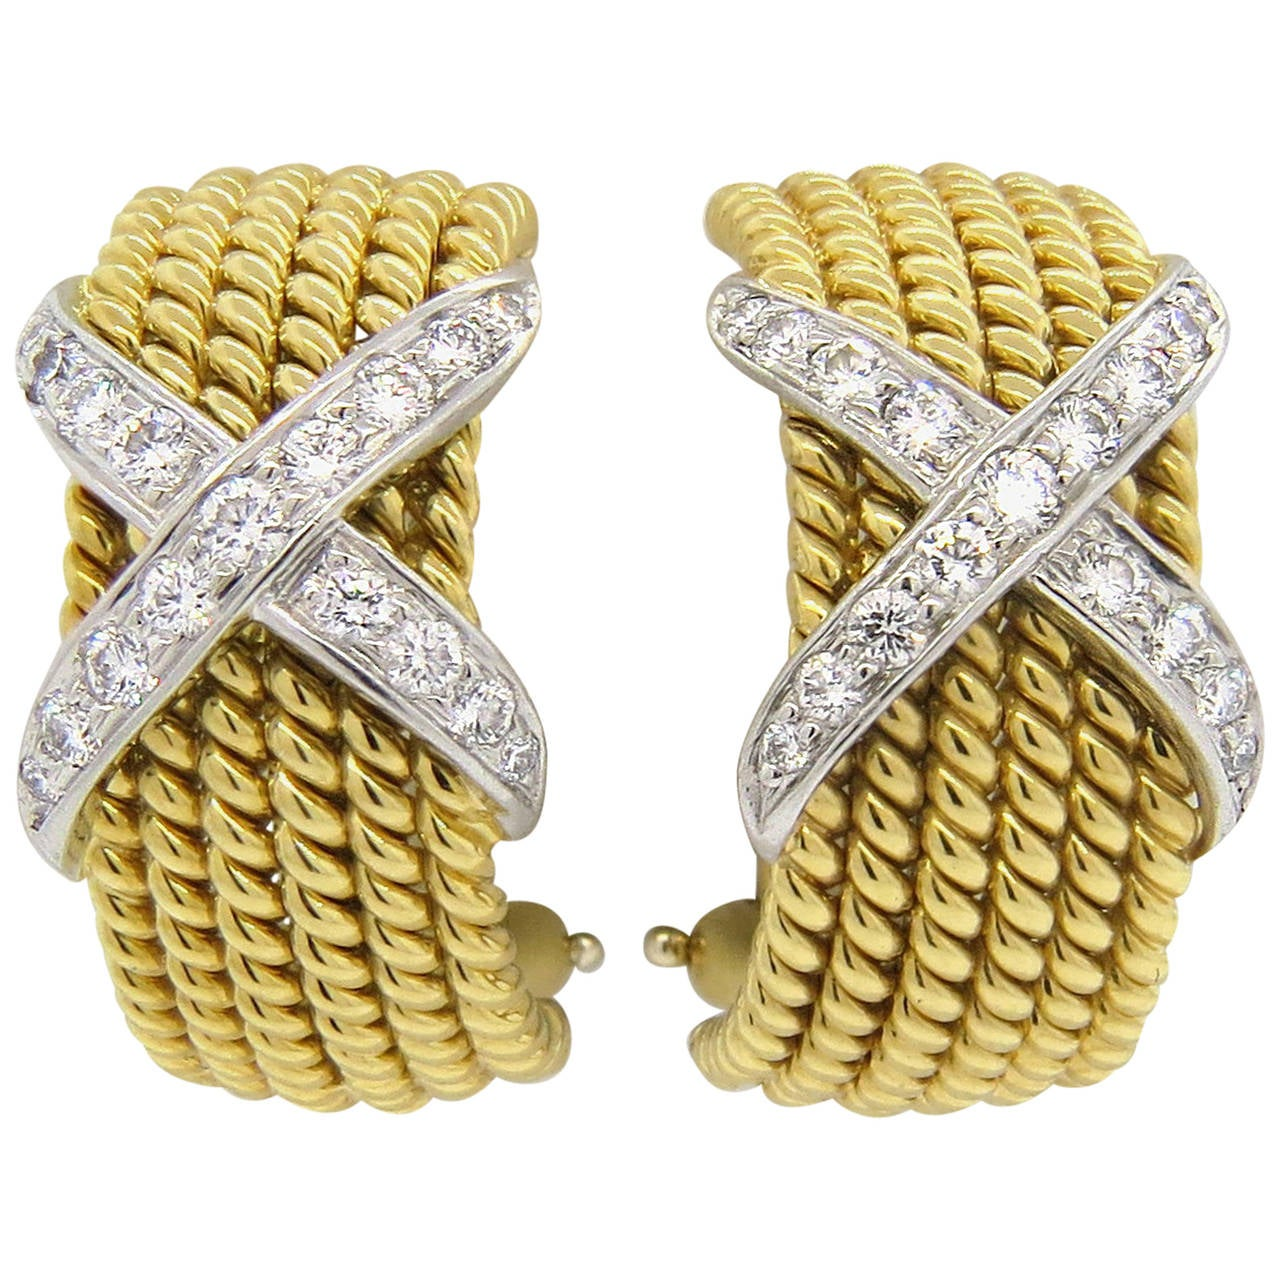 Tiffany & Co Jean Schlumberger Gold Platinum Diamond Six Row Rope Hoop Earrings